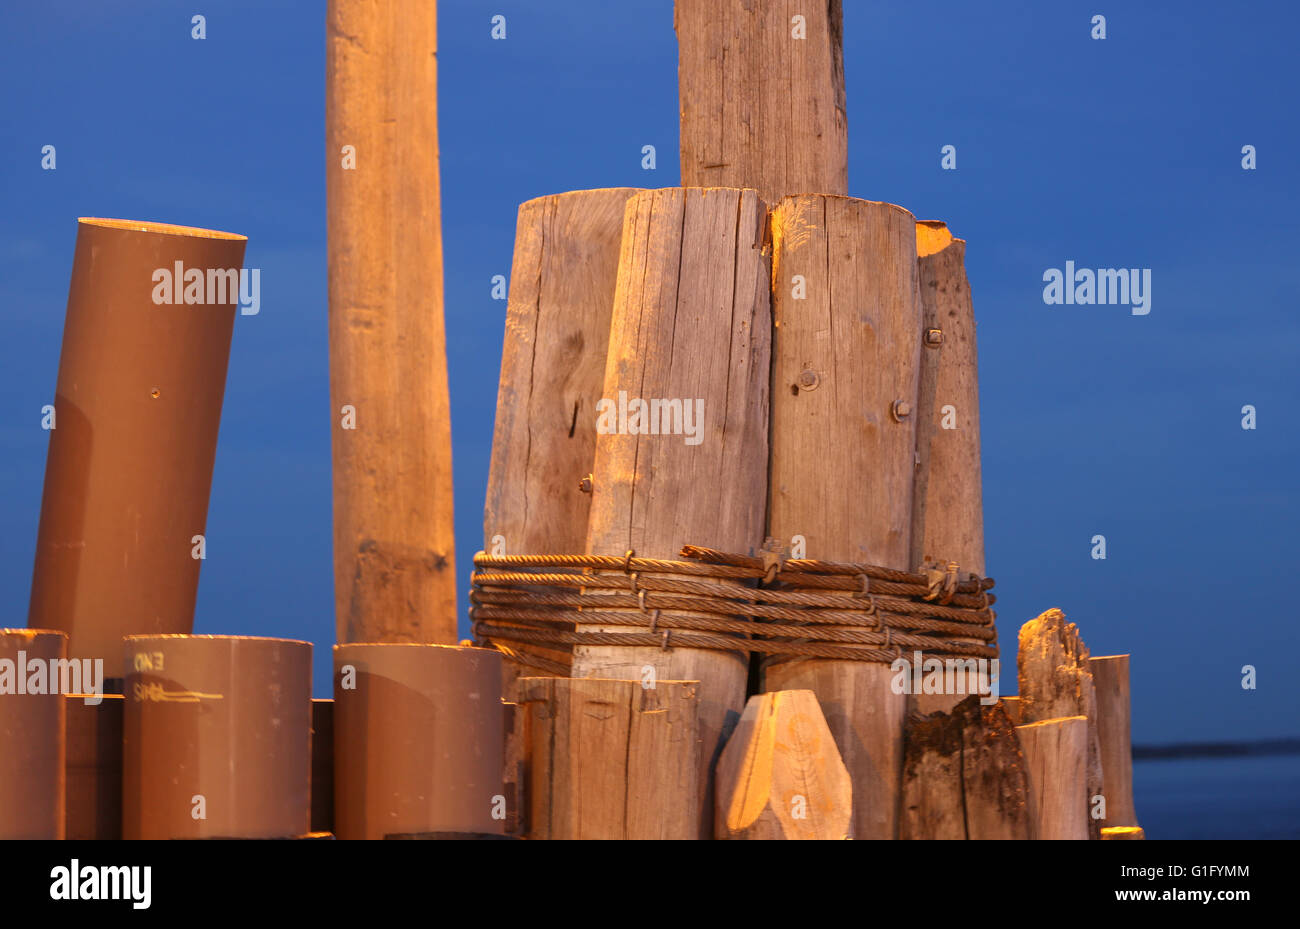 wood and synthetic pilings at a ferry landing - Stock Image